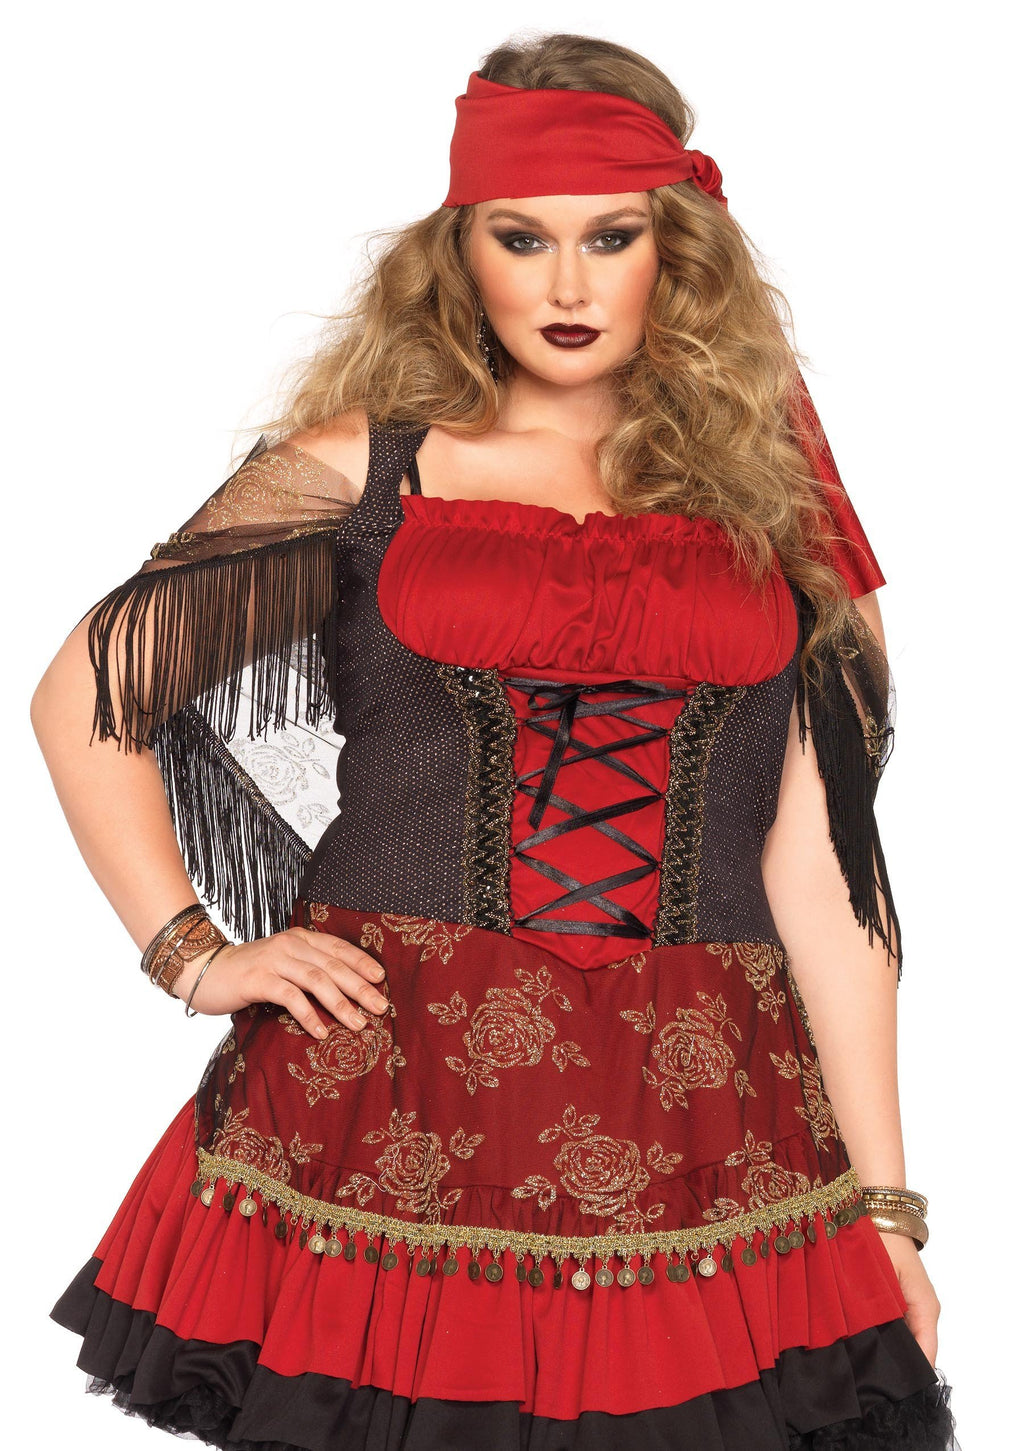 Leg Avenue Costumes 1X-2X Plus Size Mystic Vixen Pirate Costume